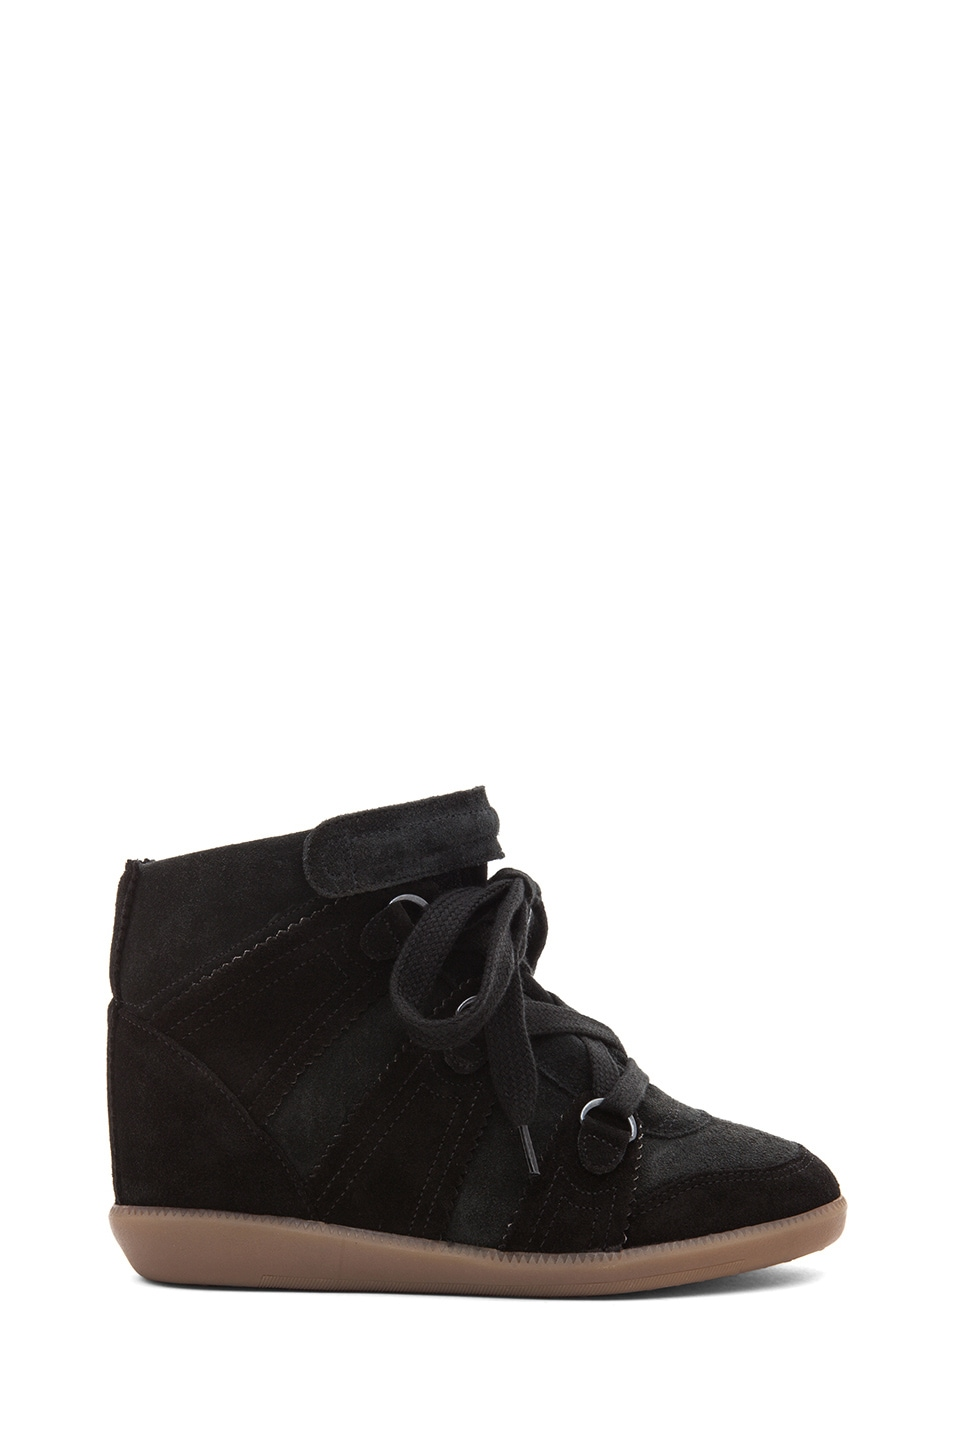 Image 1 of Isabel Marant Bluebel Calfskin Velvet Leather Sneaker in Faded Black